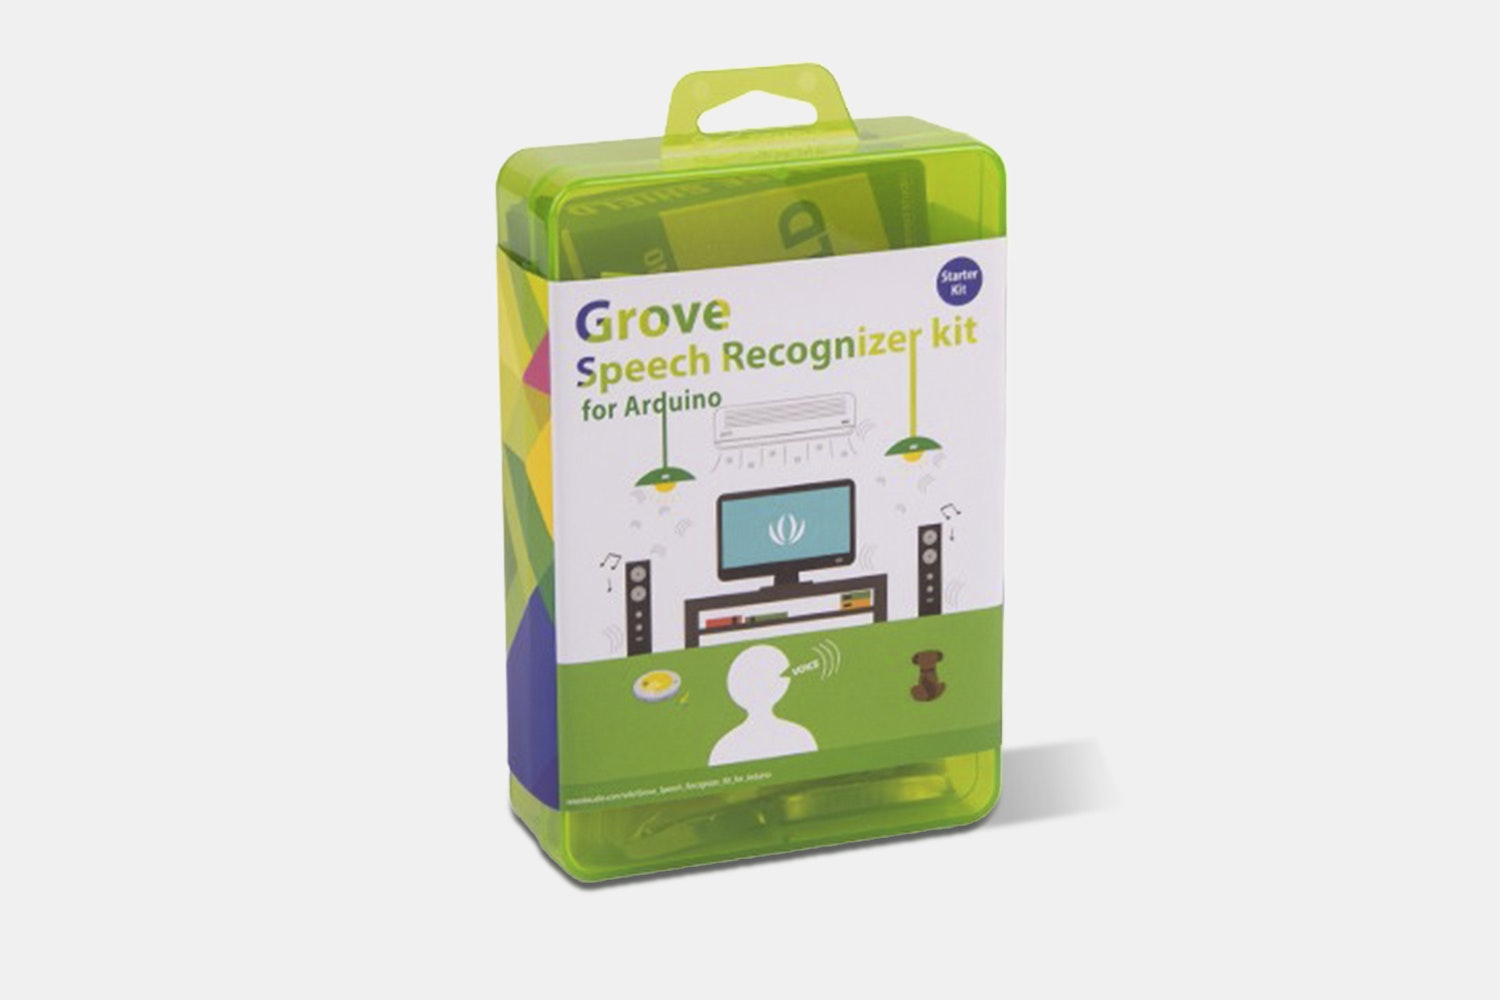 Seeed Grove Speech Recognizer Kit for Arduino